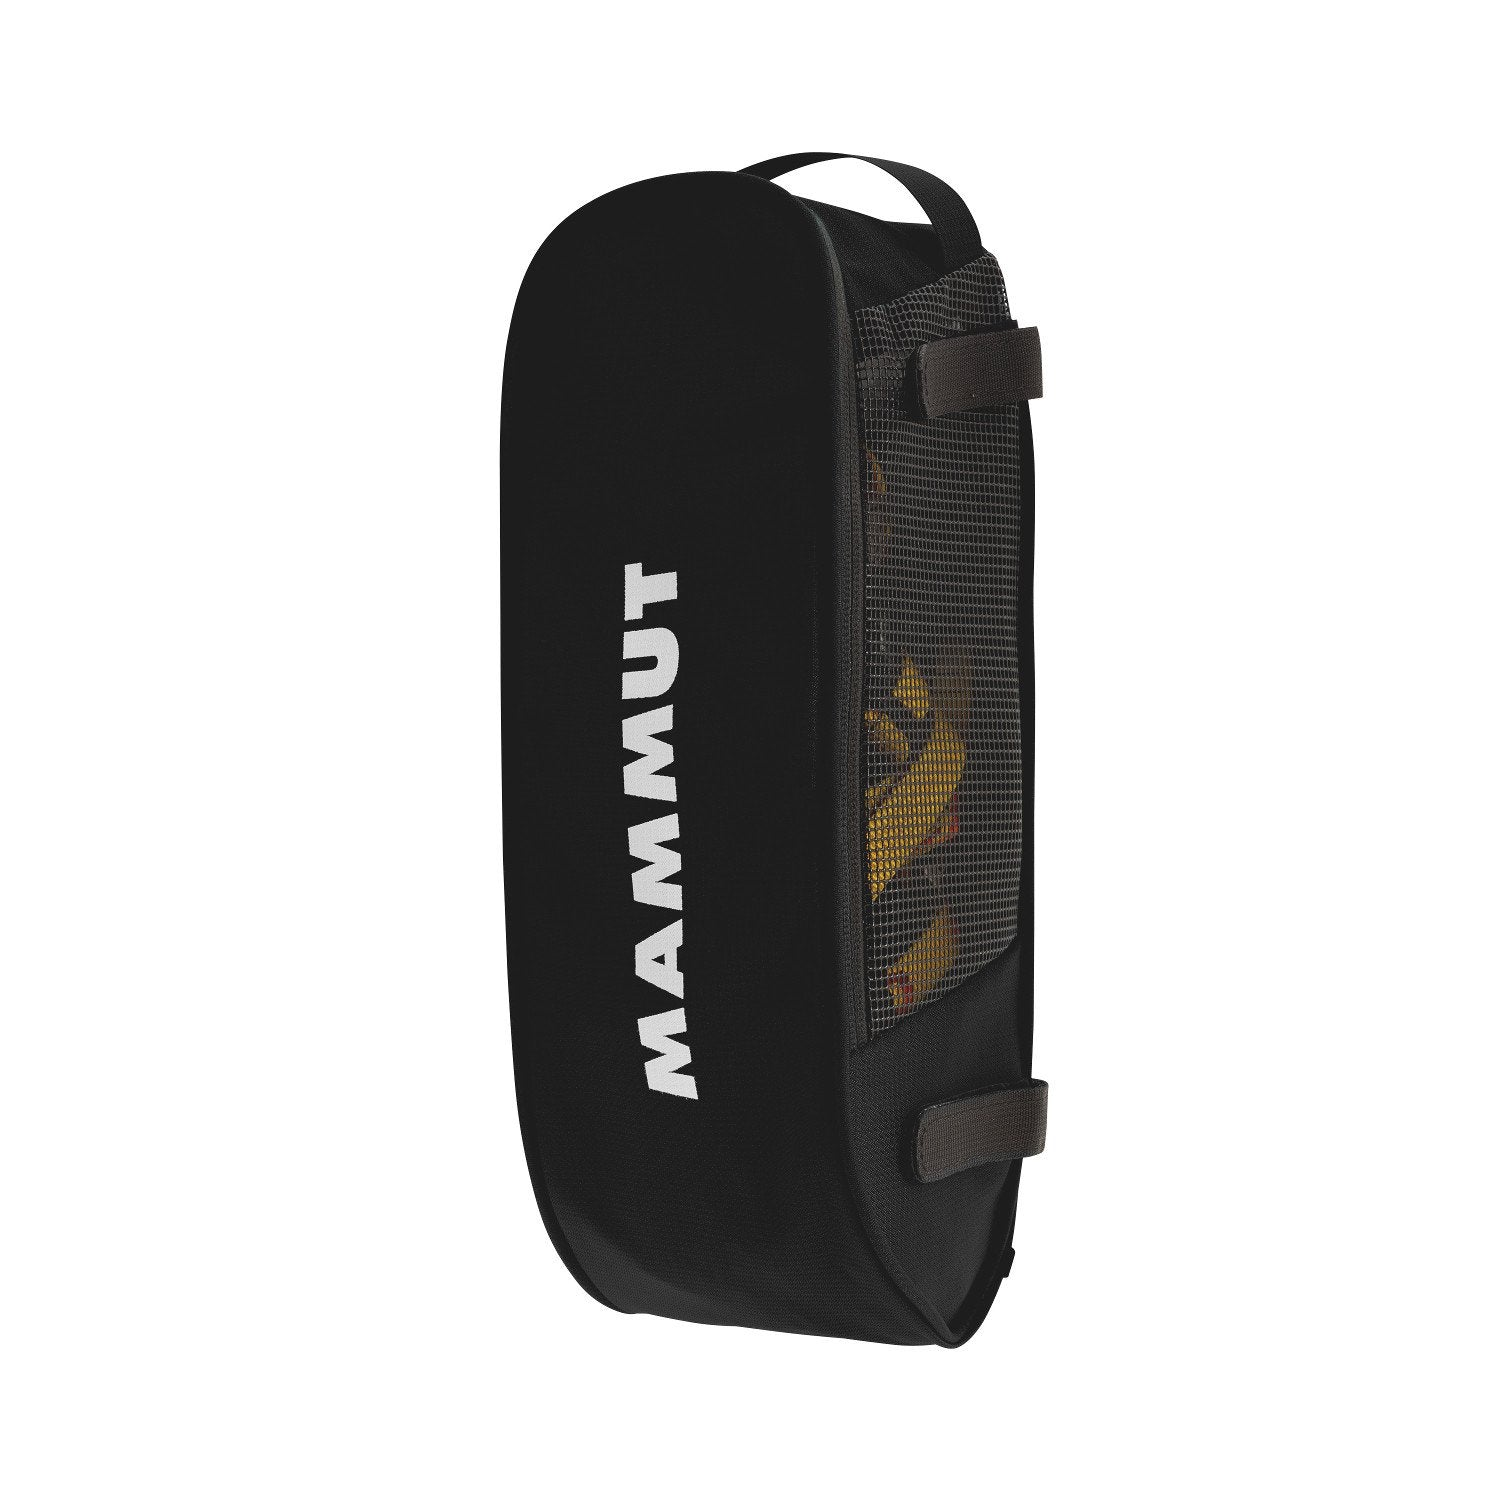 Mammut Crampon Pocket, front/side view shown in black colour